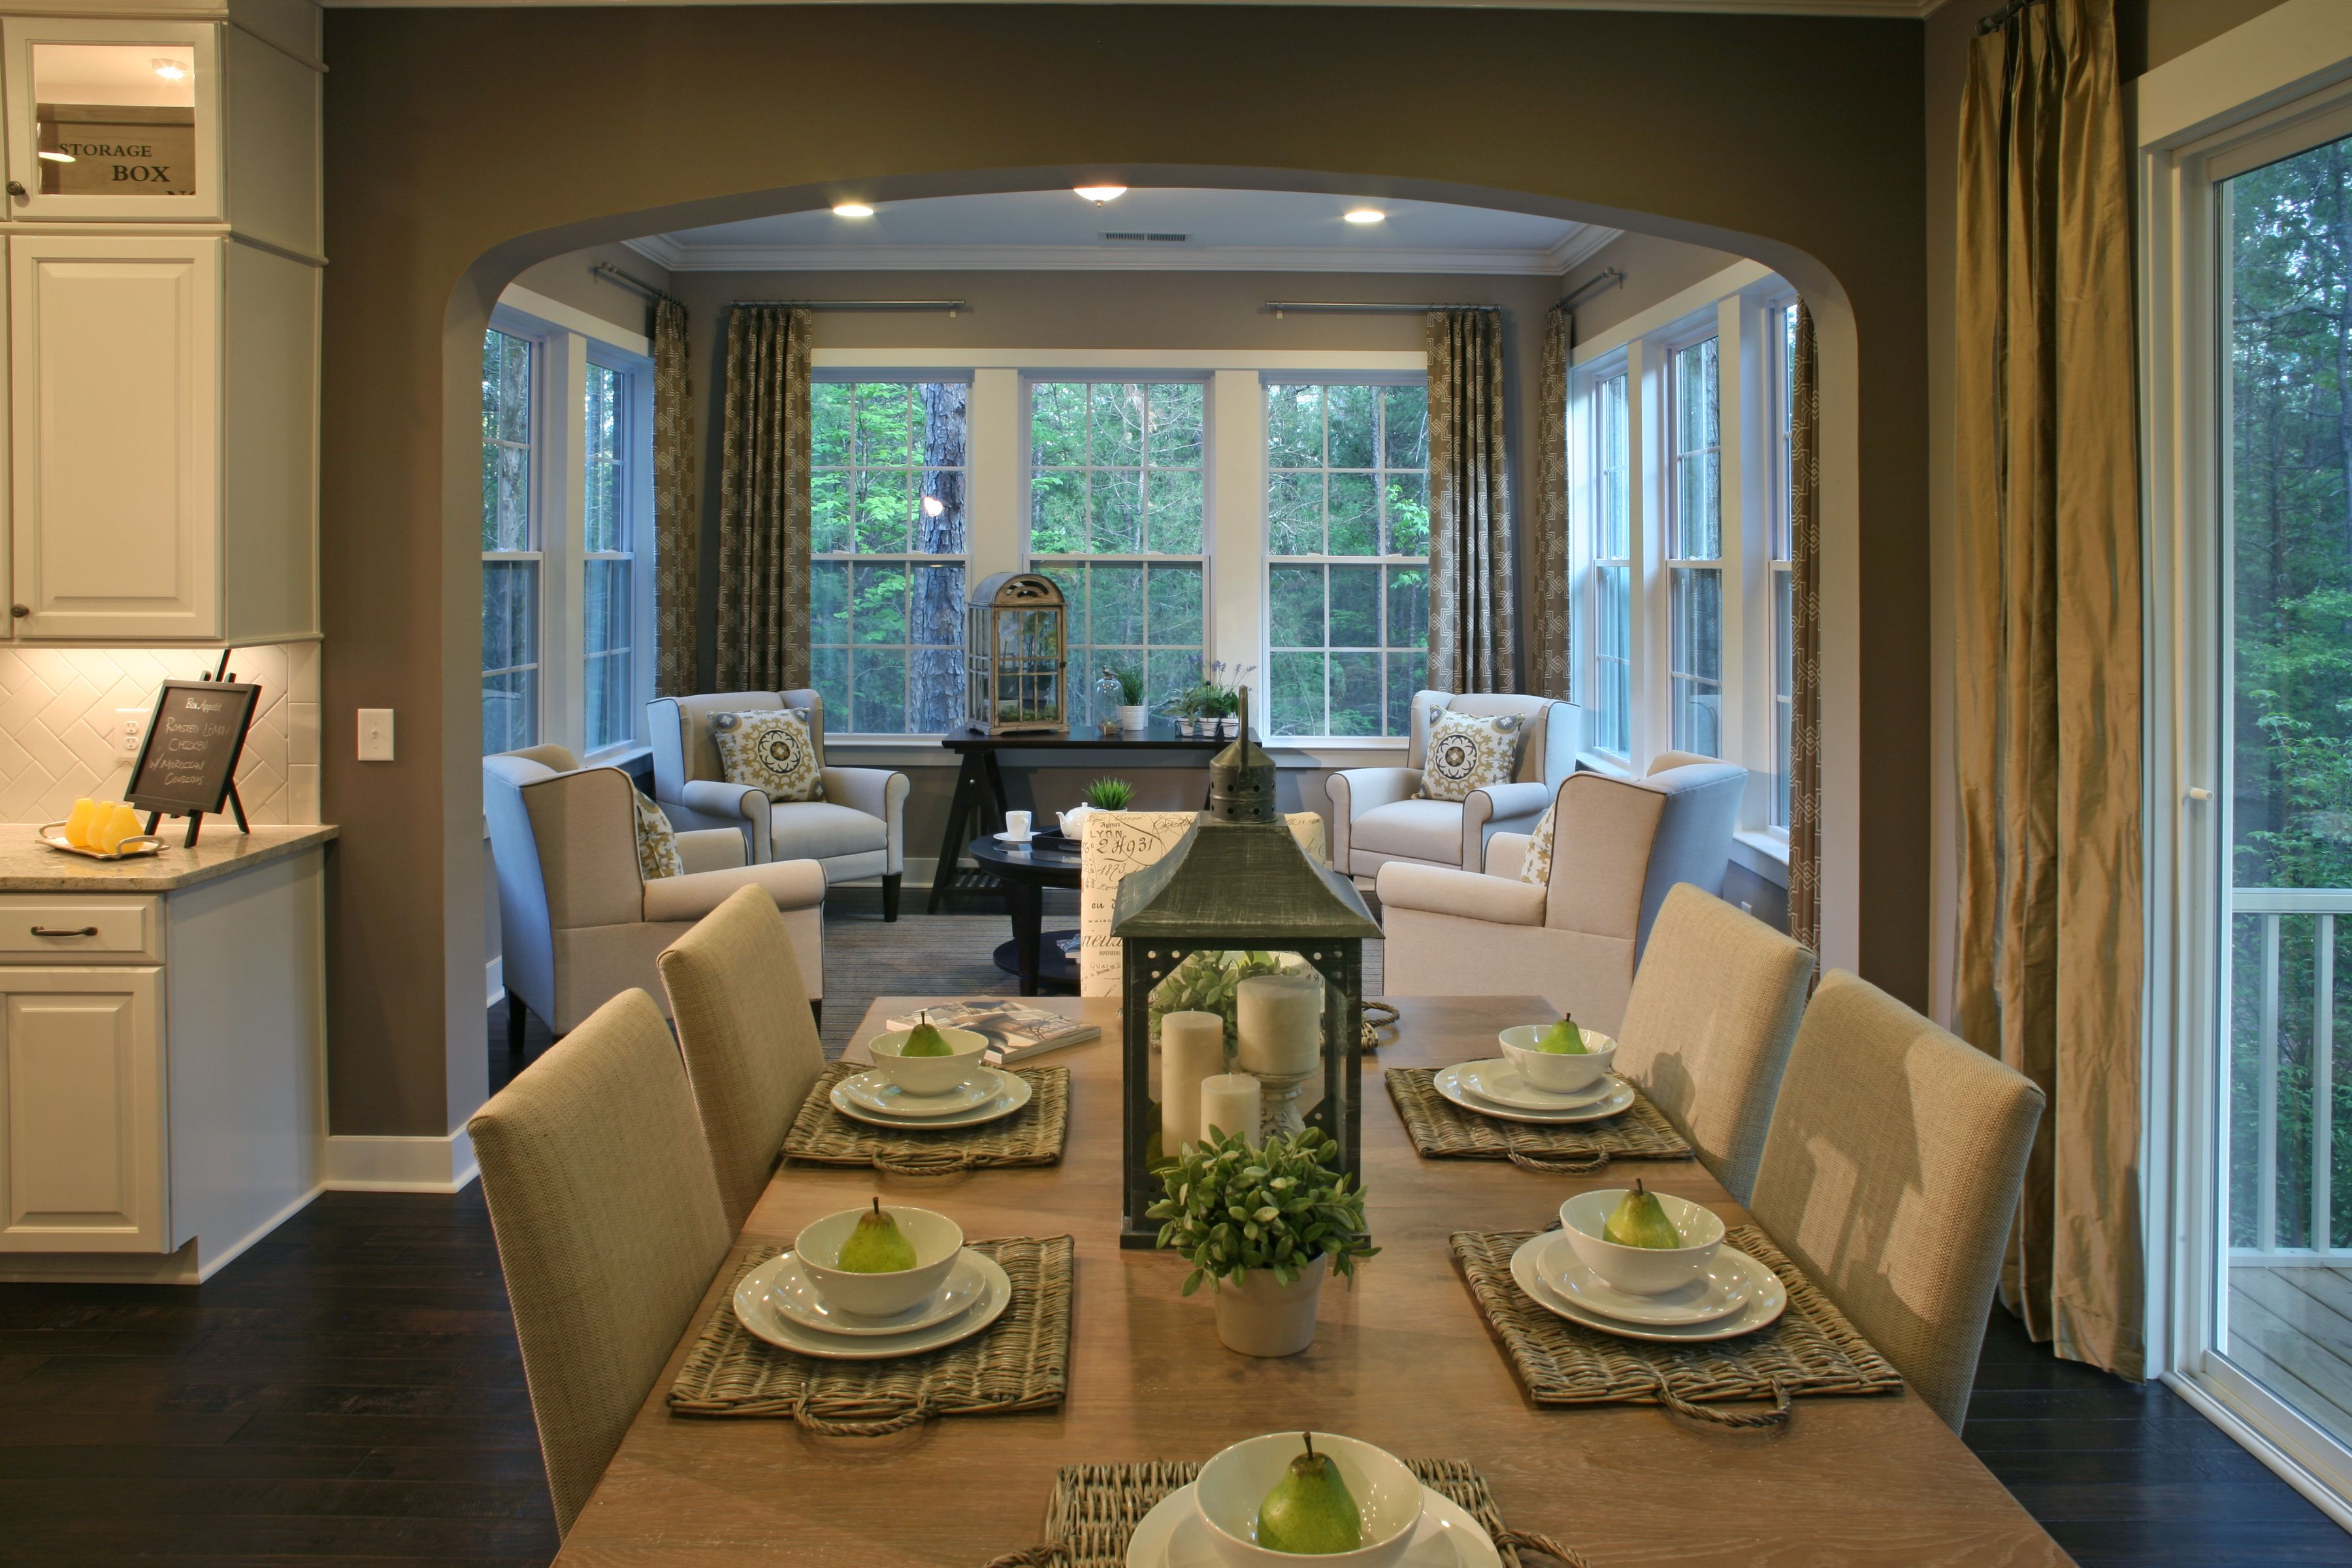 Model Home Designed By Mary Ann Roth, Lead Designer For Bassett Furniture,  At The Forest, Fort Mill, SC. Breakfast Room And Adjoining Sunroom